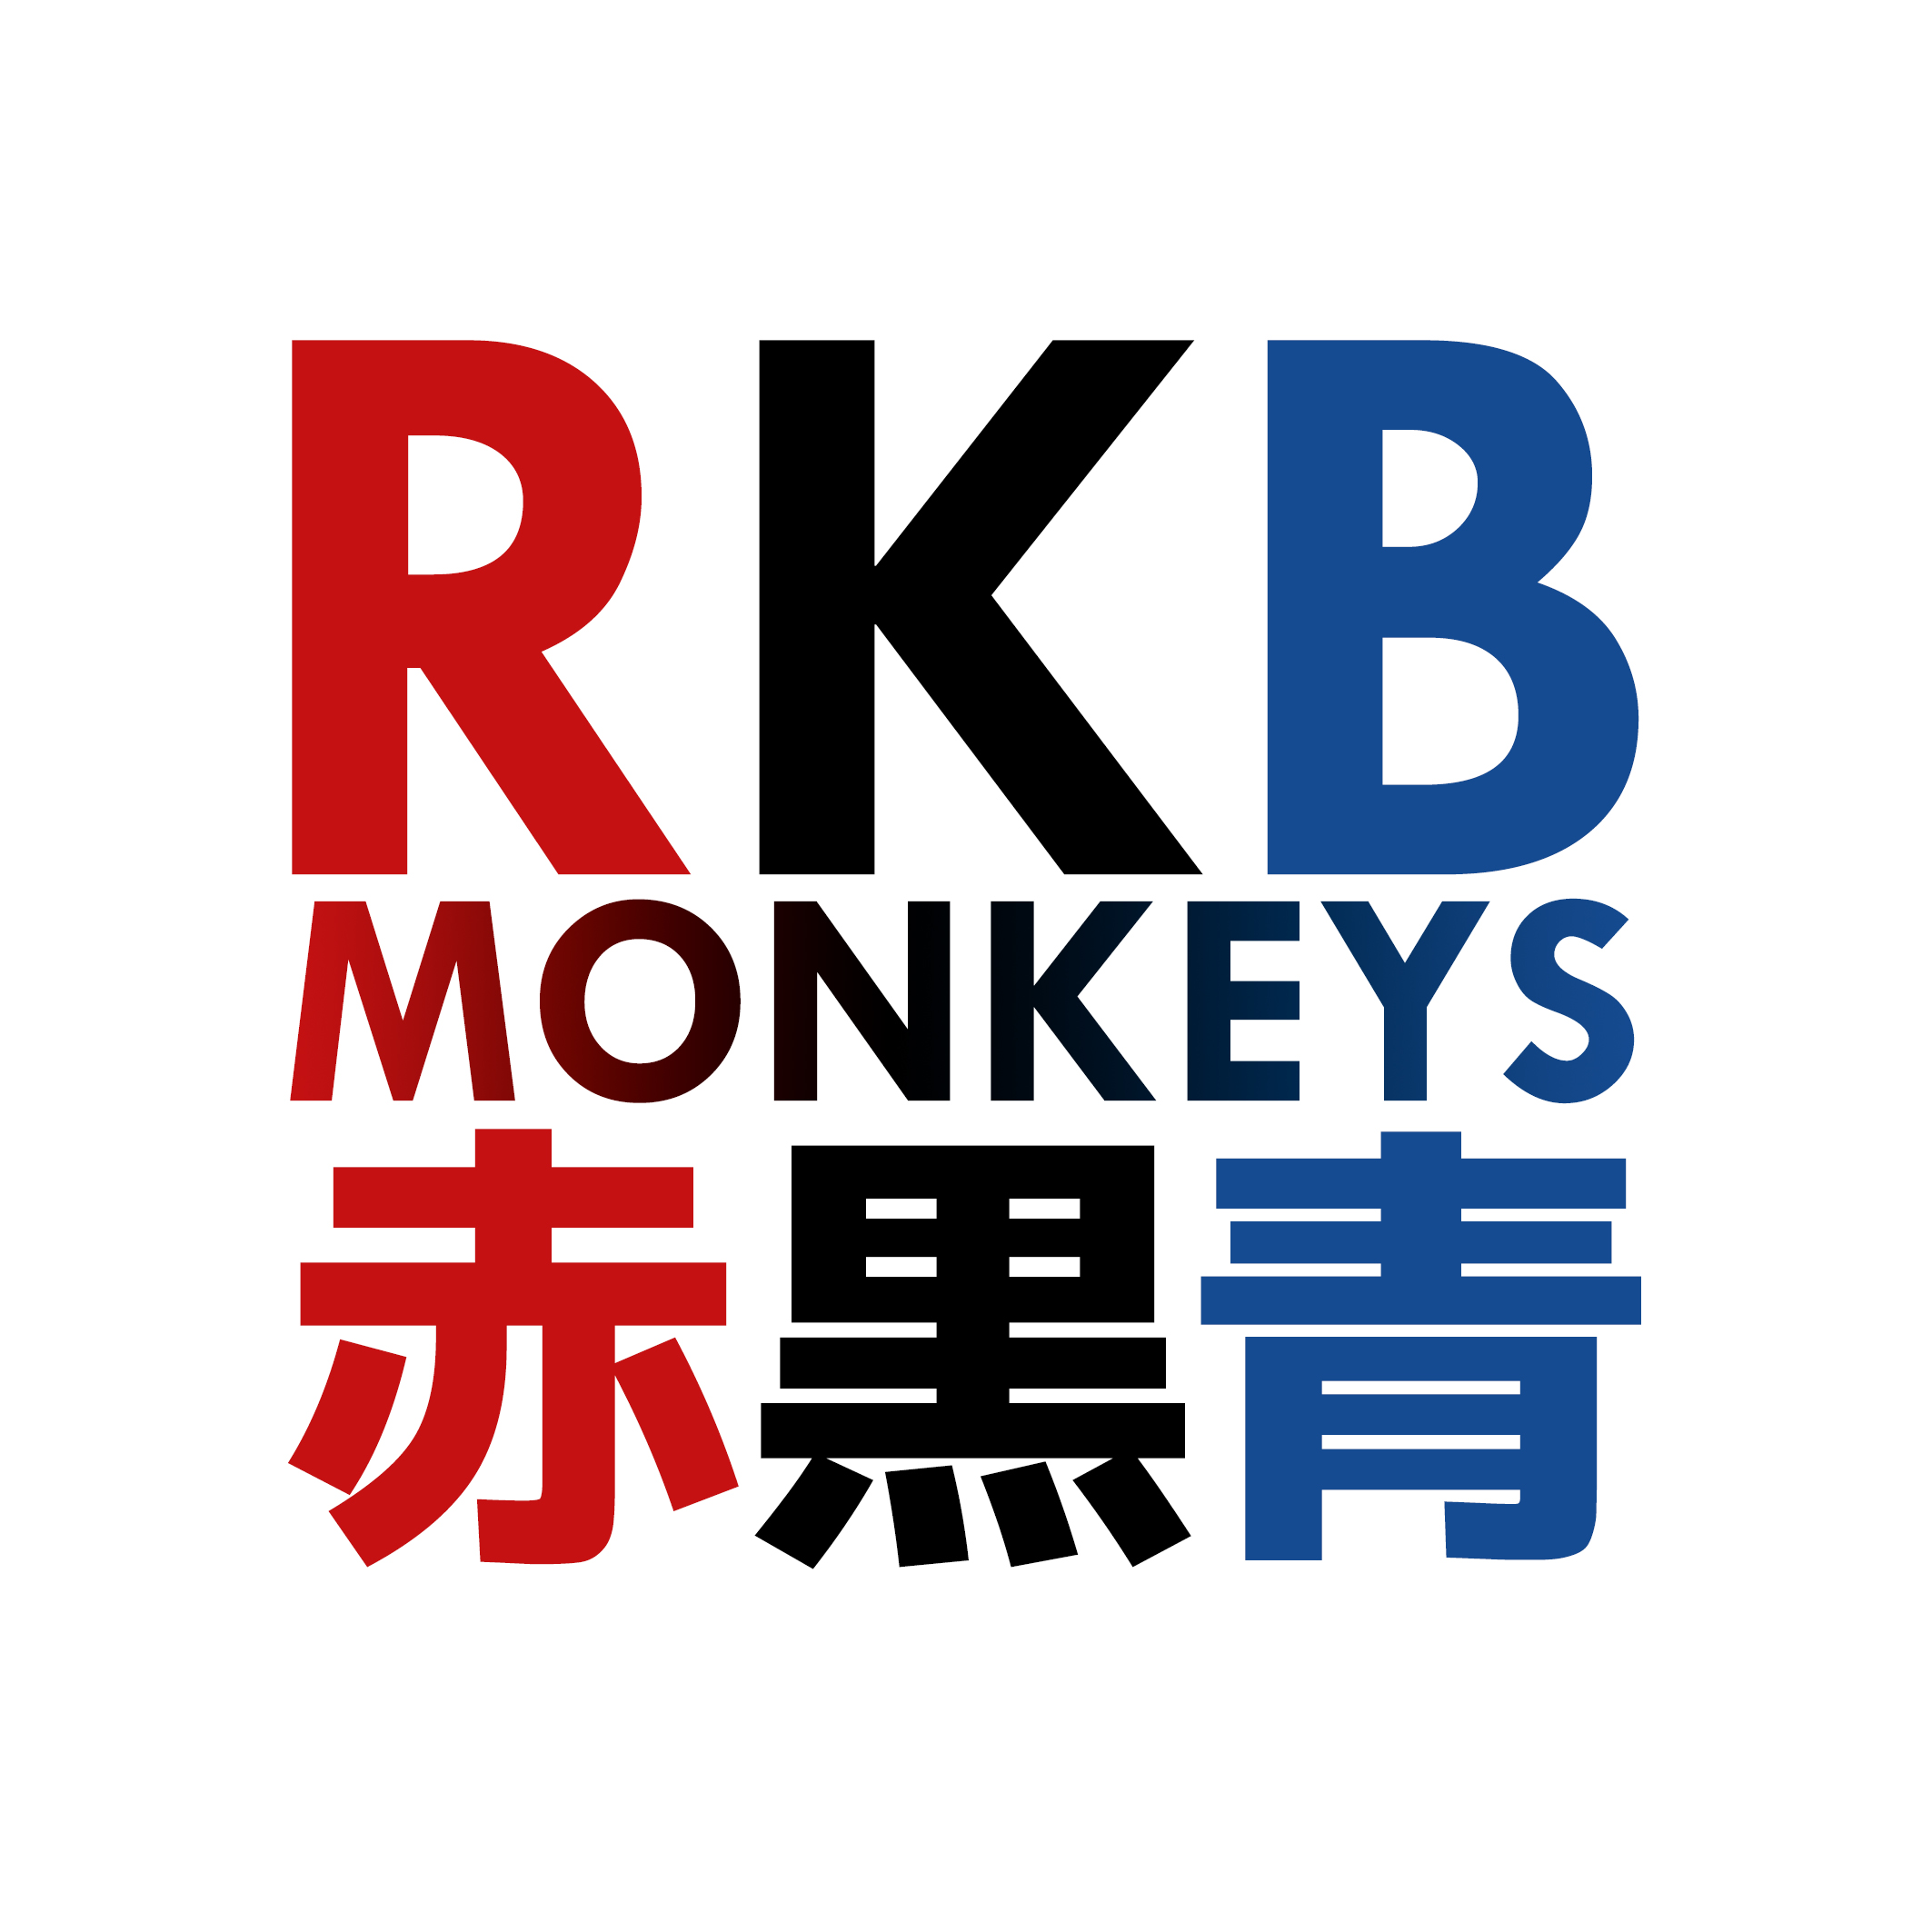 RKB Monkeys